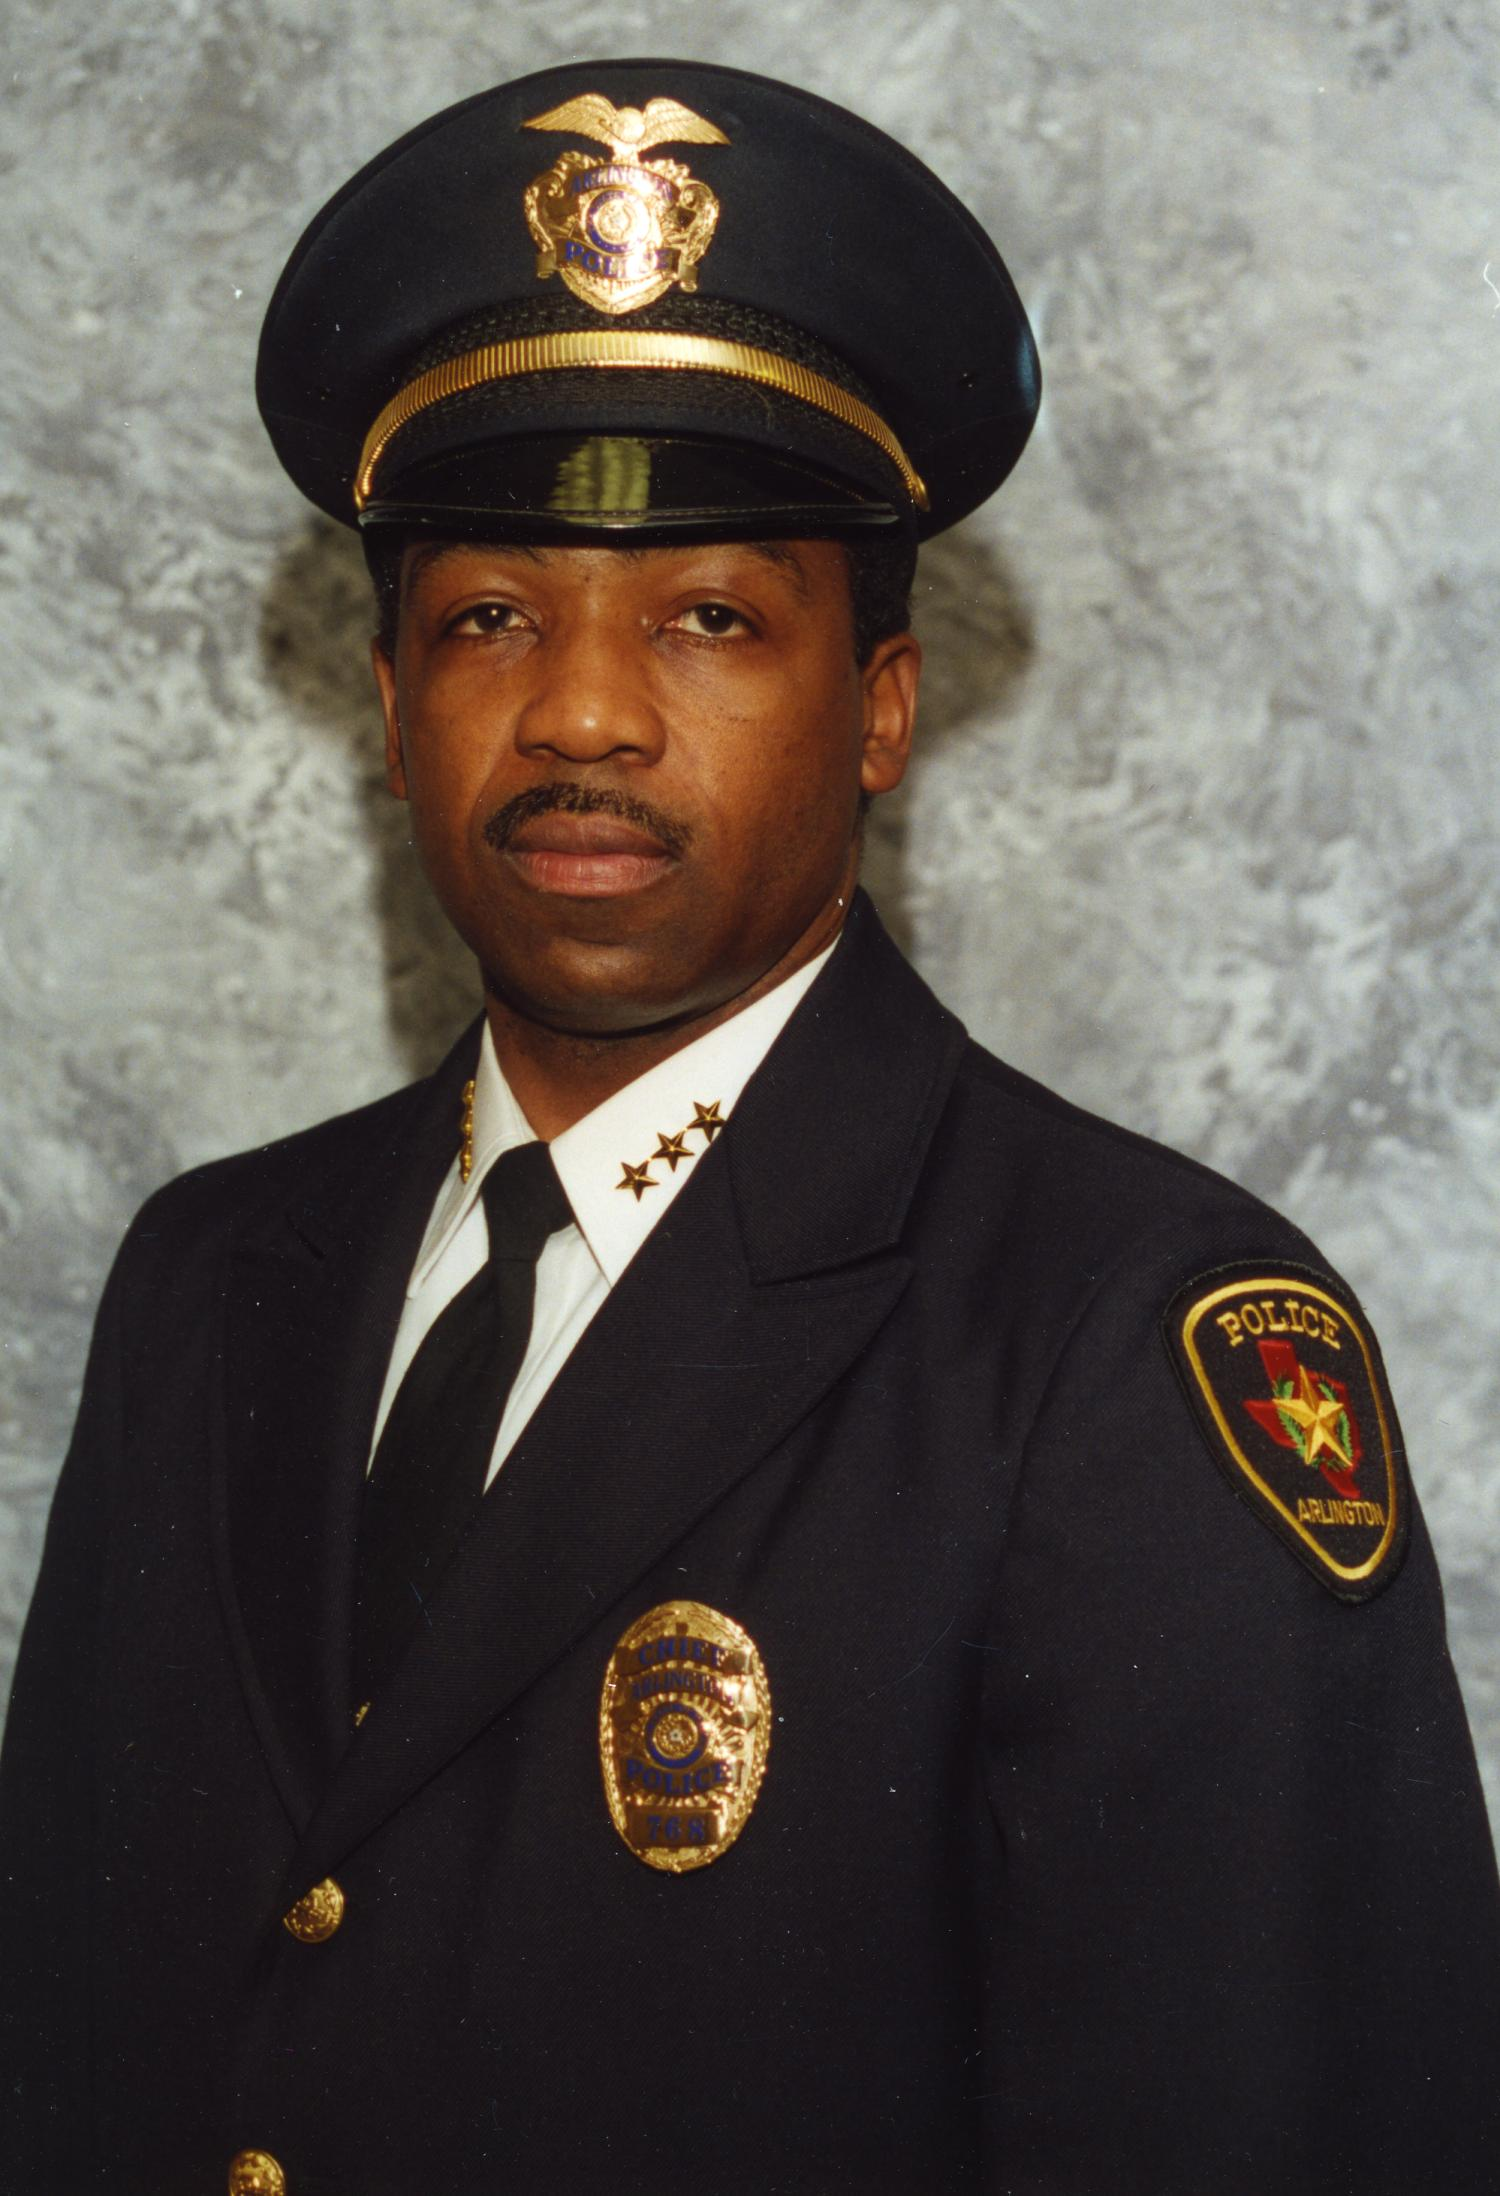 [Arlington Police Chief Theron Bowman, portrait with hat on head]                                                                                                      [Sequence #]: 1 of 1